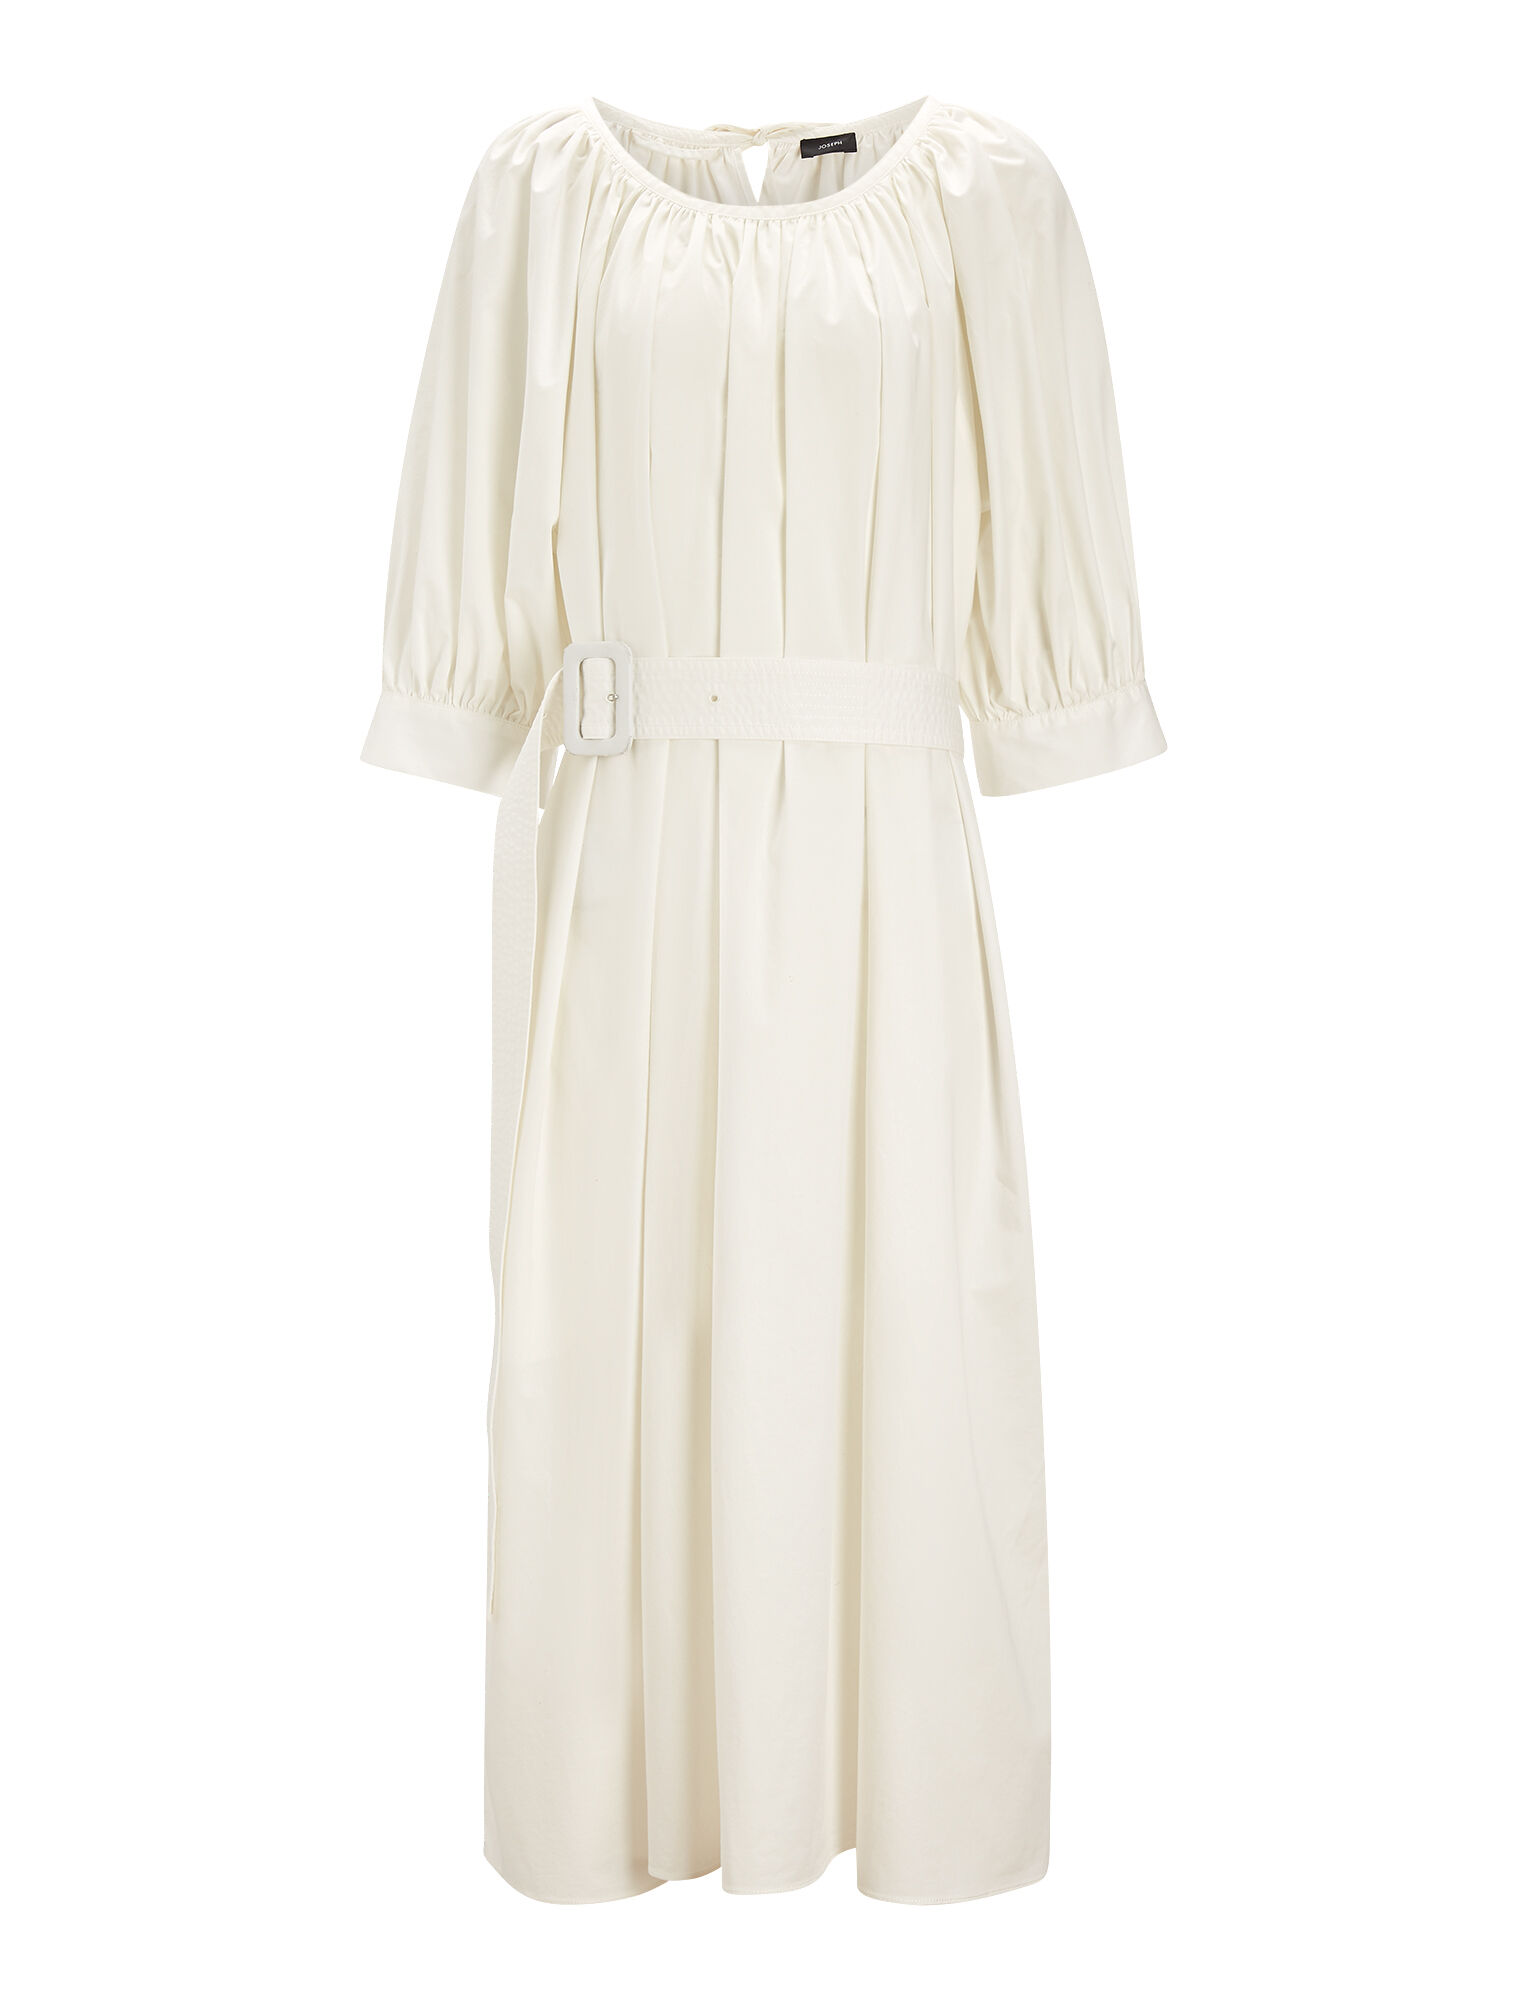 Joseph, Shan Cotton Dress, in OFF WHITE